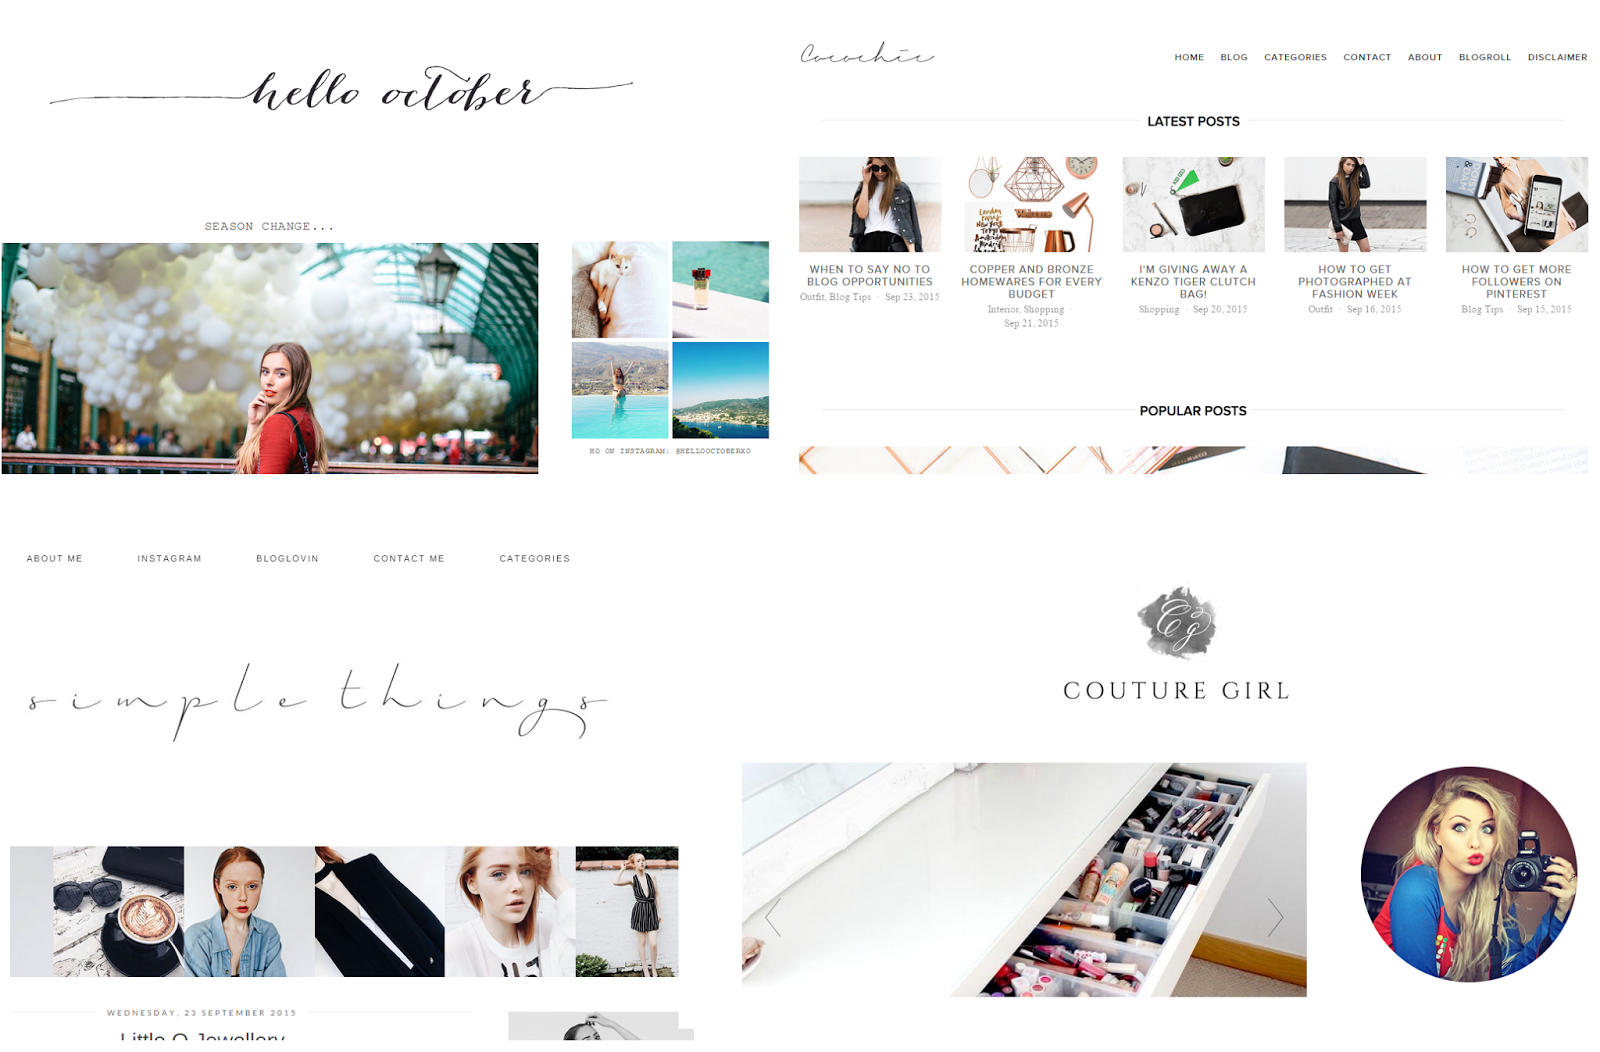 Some of my favourite bloggers, Hello October, Holly Loves The Simple Things, Coco Chic, Couture Girl